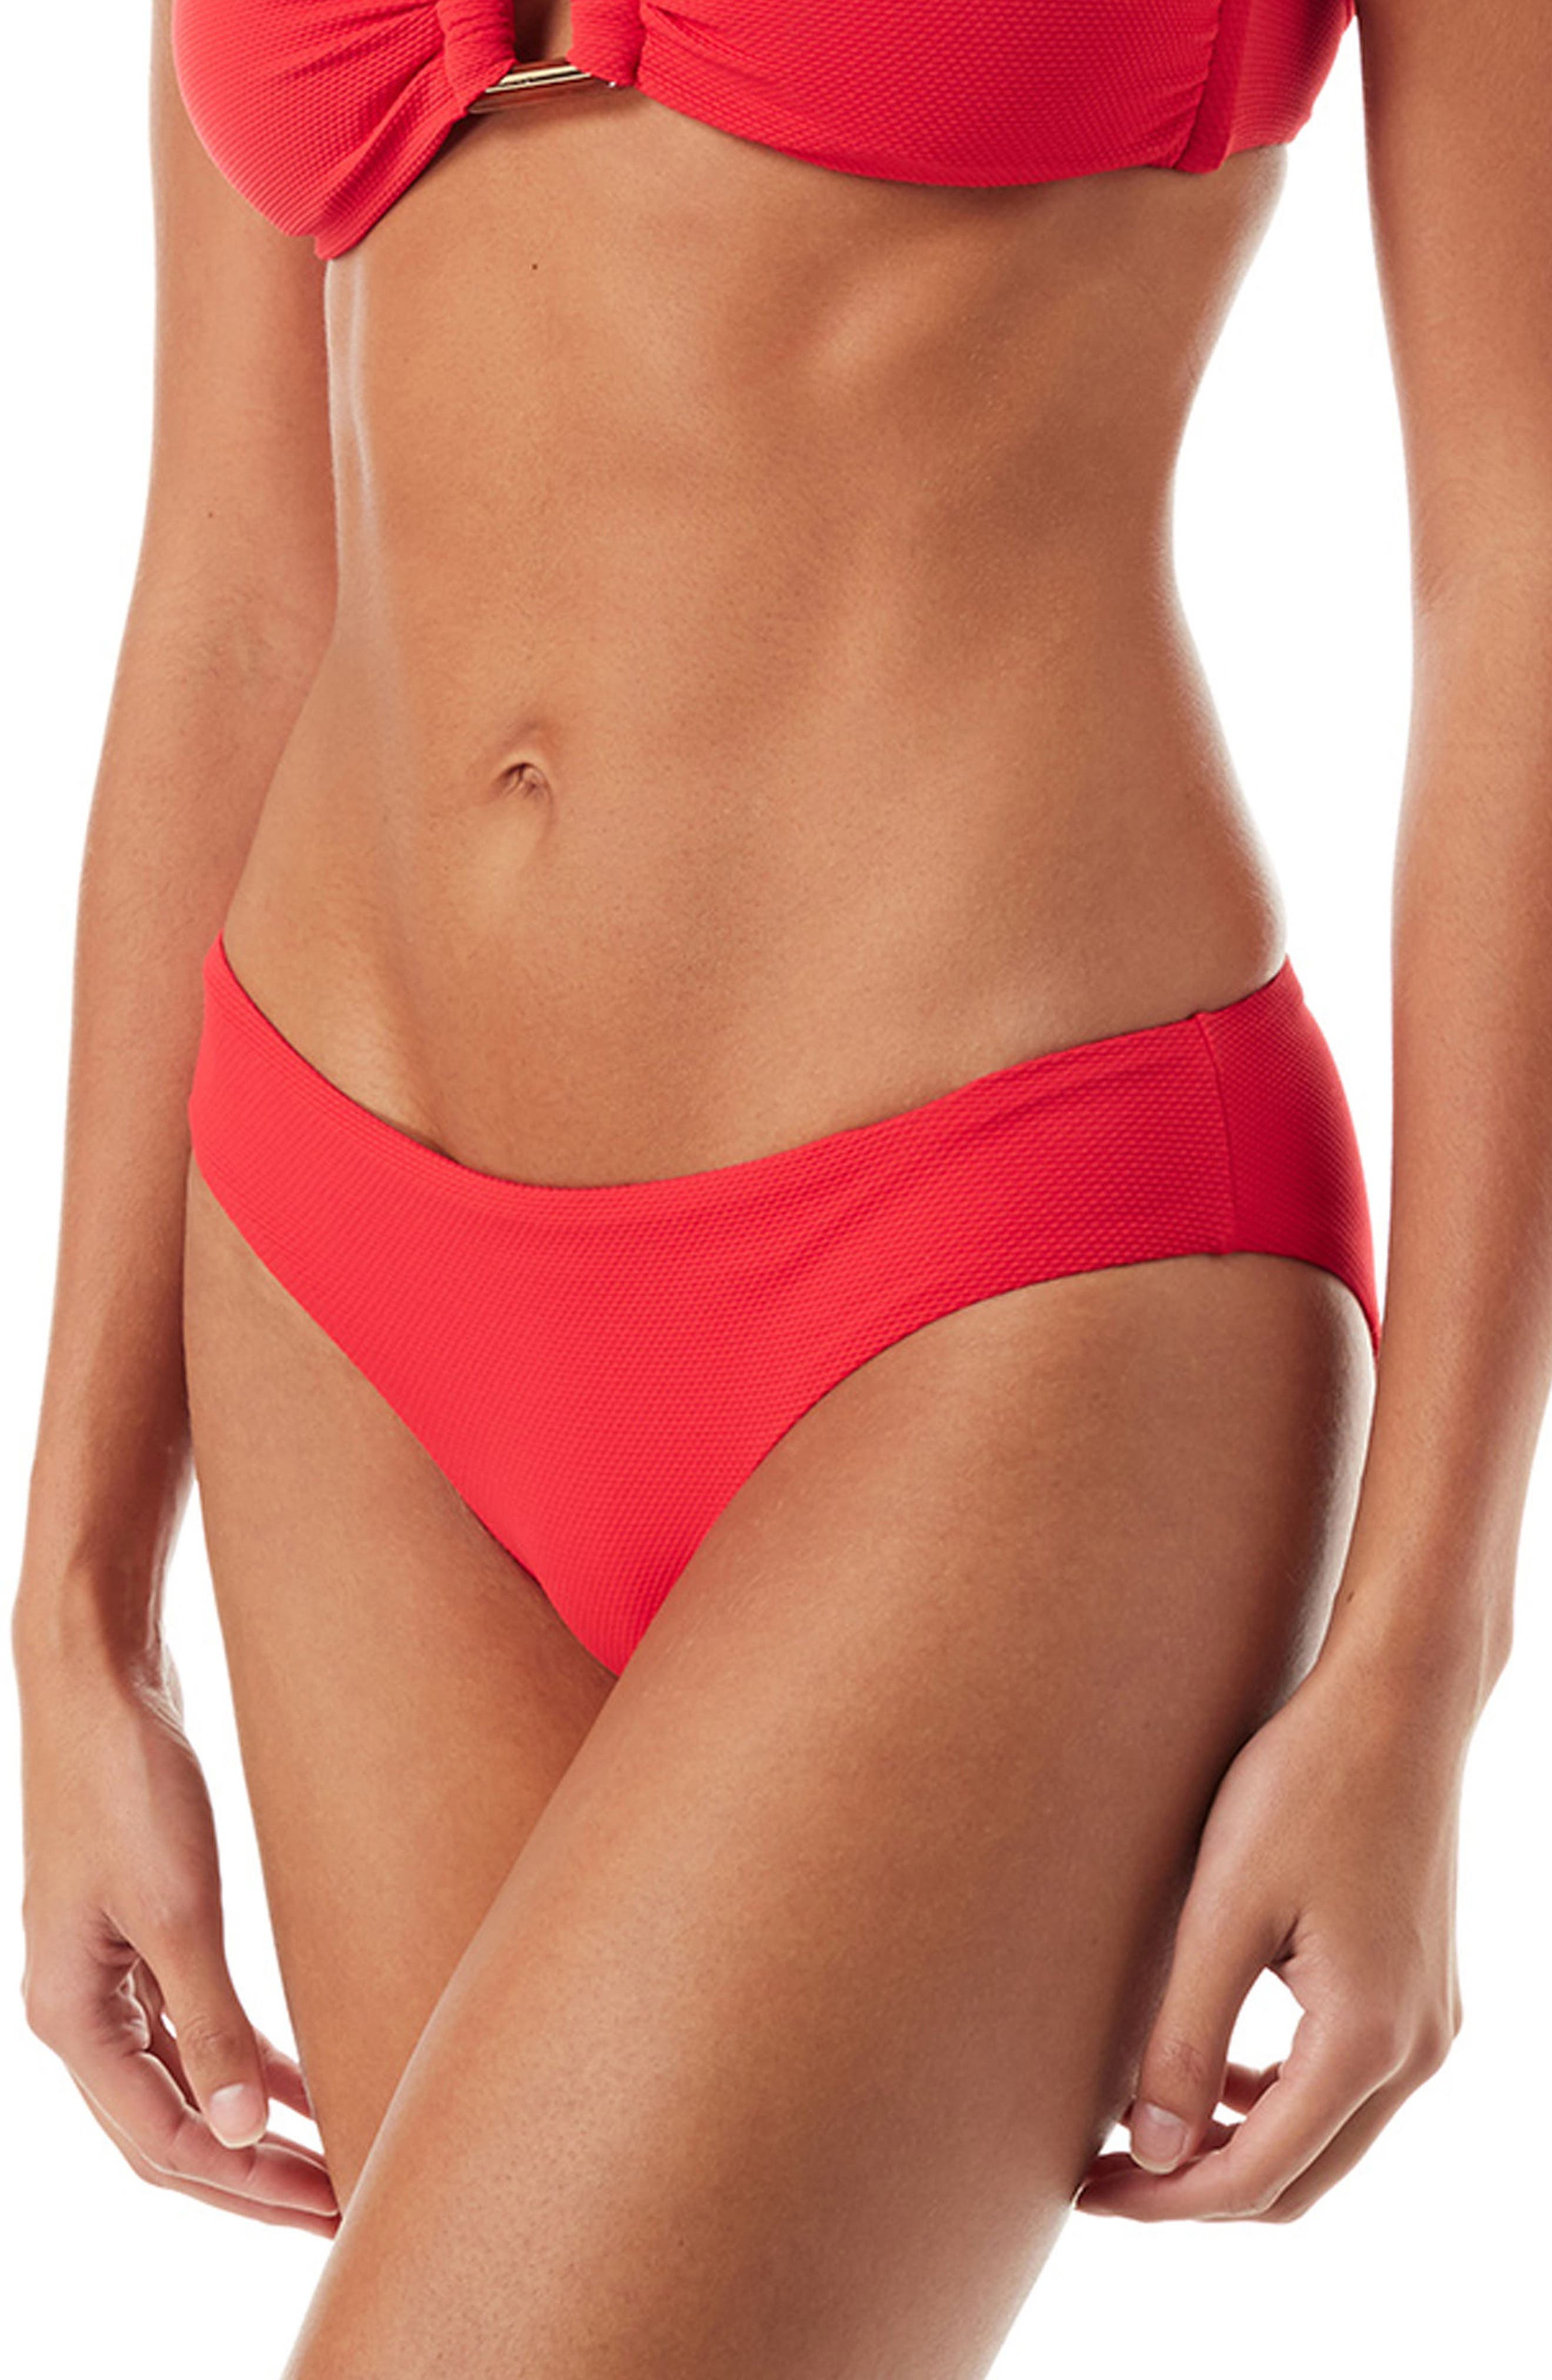 Angola Bikini Bottoms,                         Main,                         color, PIQUE RED